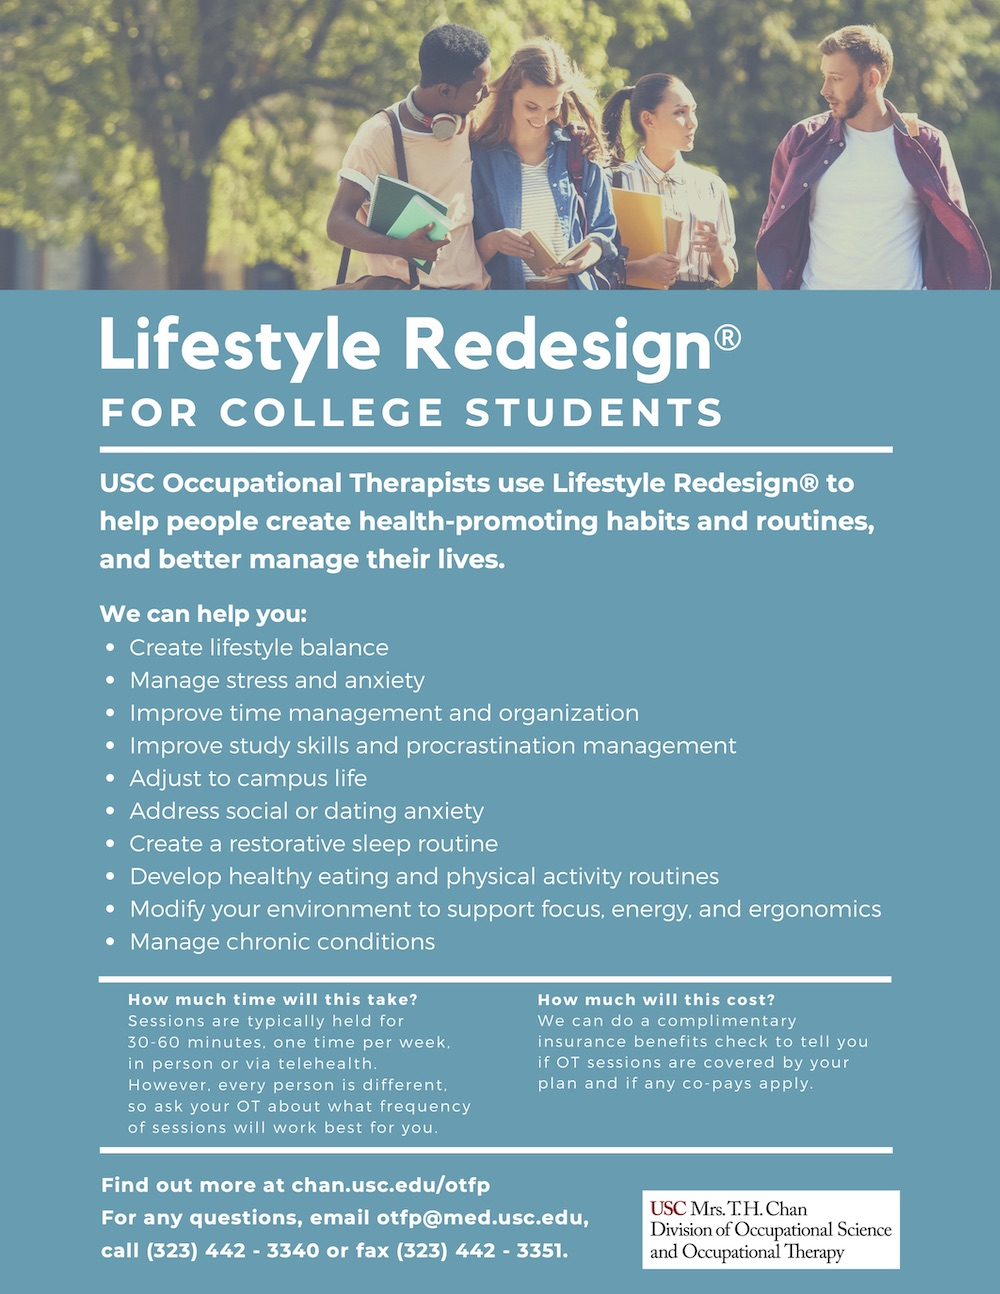 Lifestyle Redesign for College Students